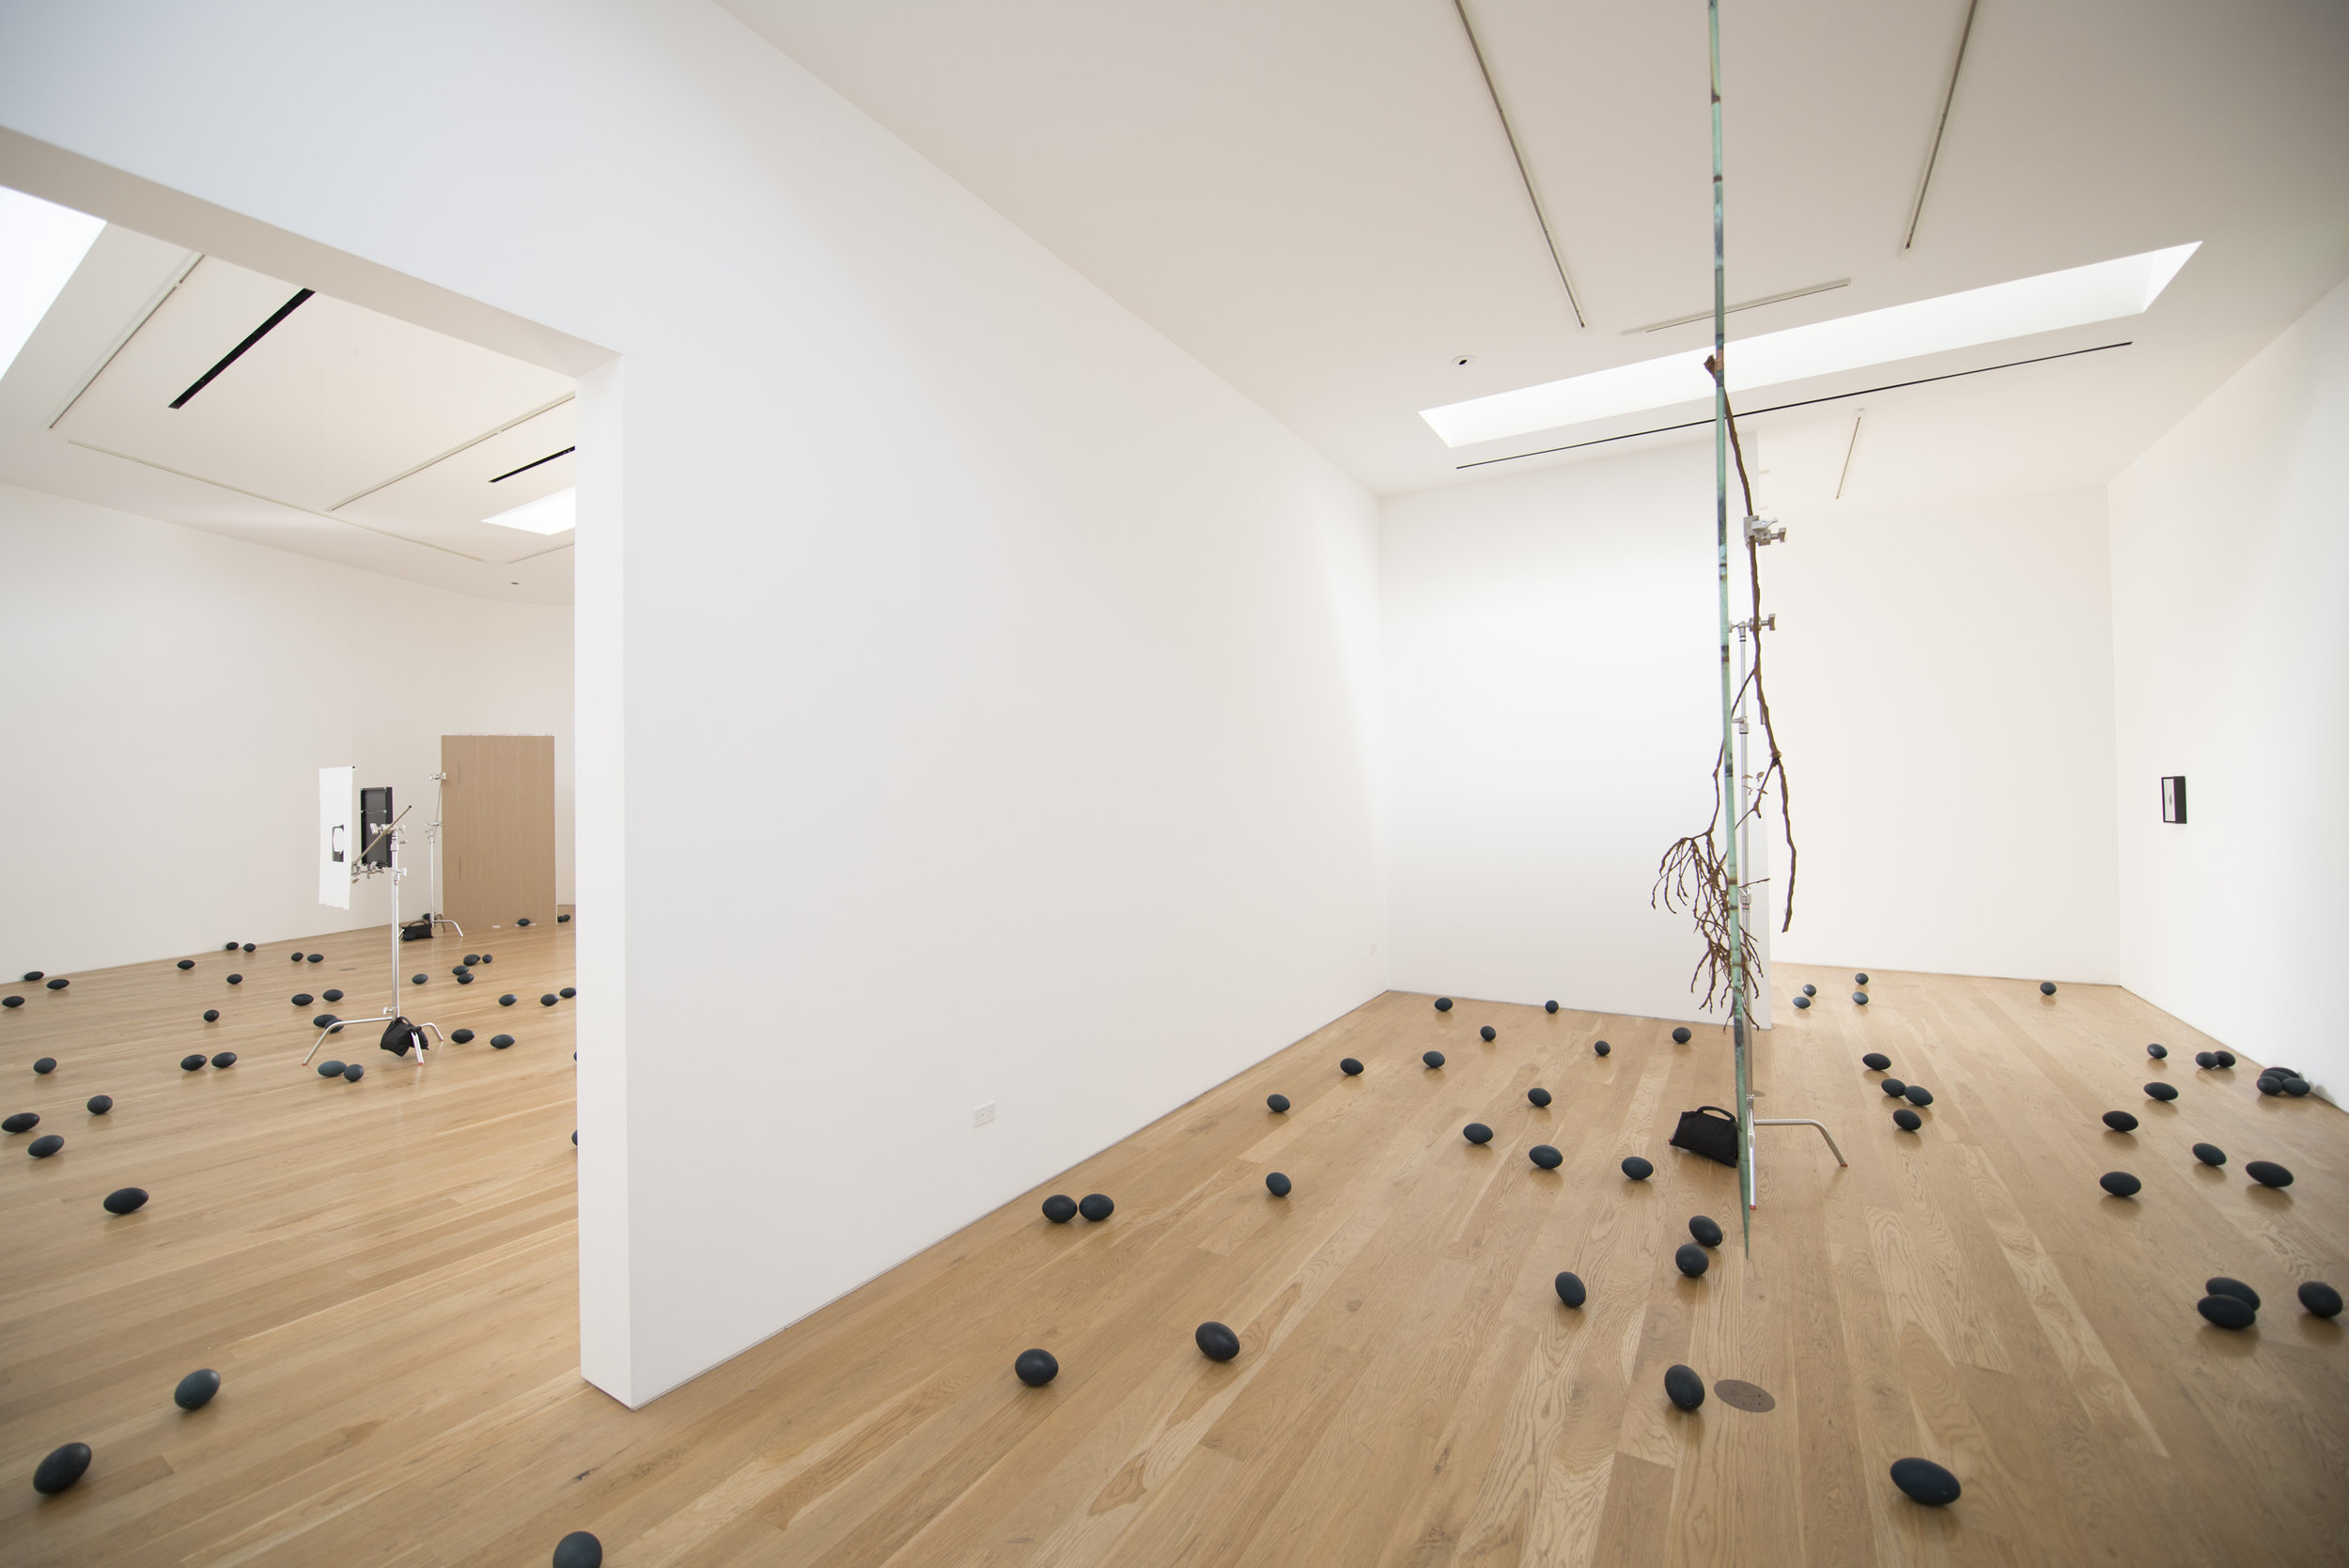 Emilie Halpern and Andrew Cameron  Standard Candles  Installation View, 2014